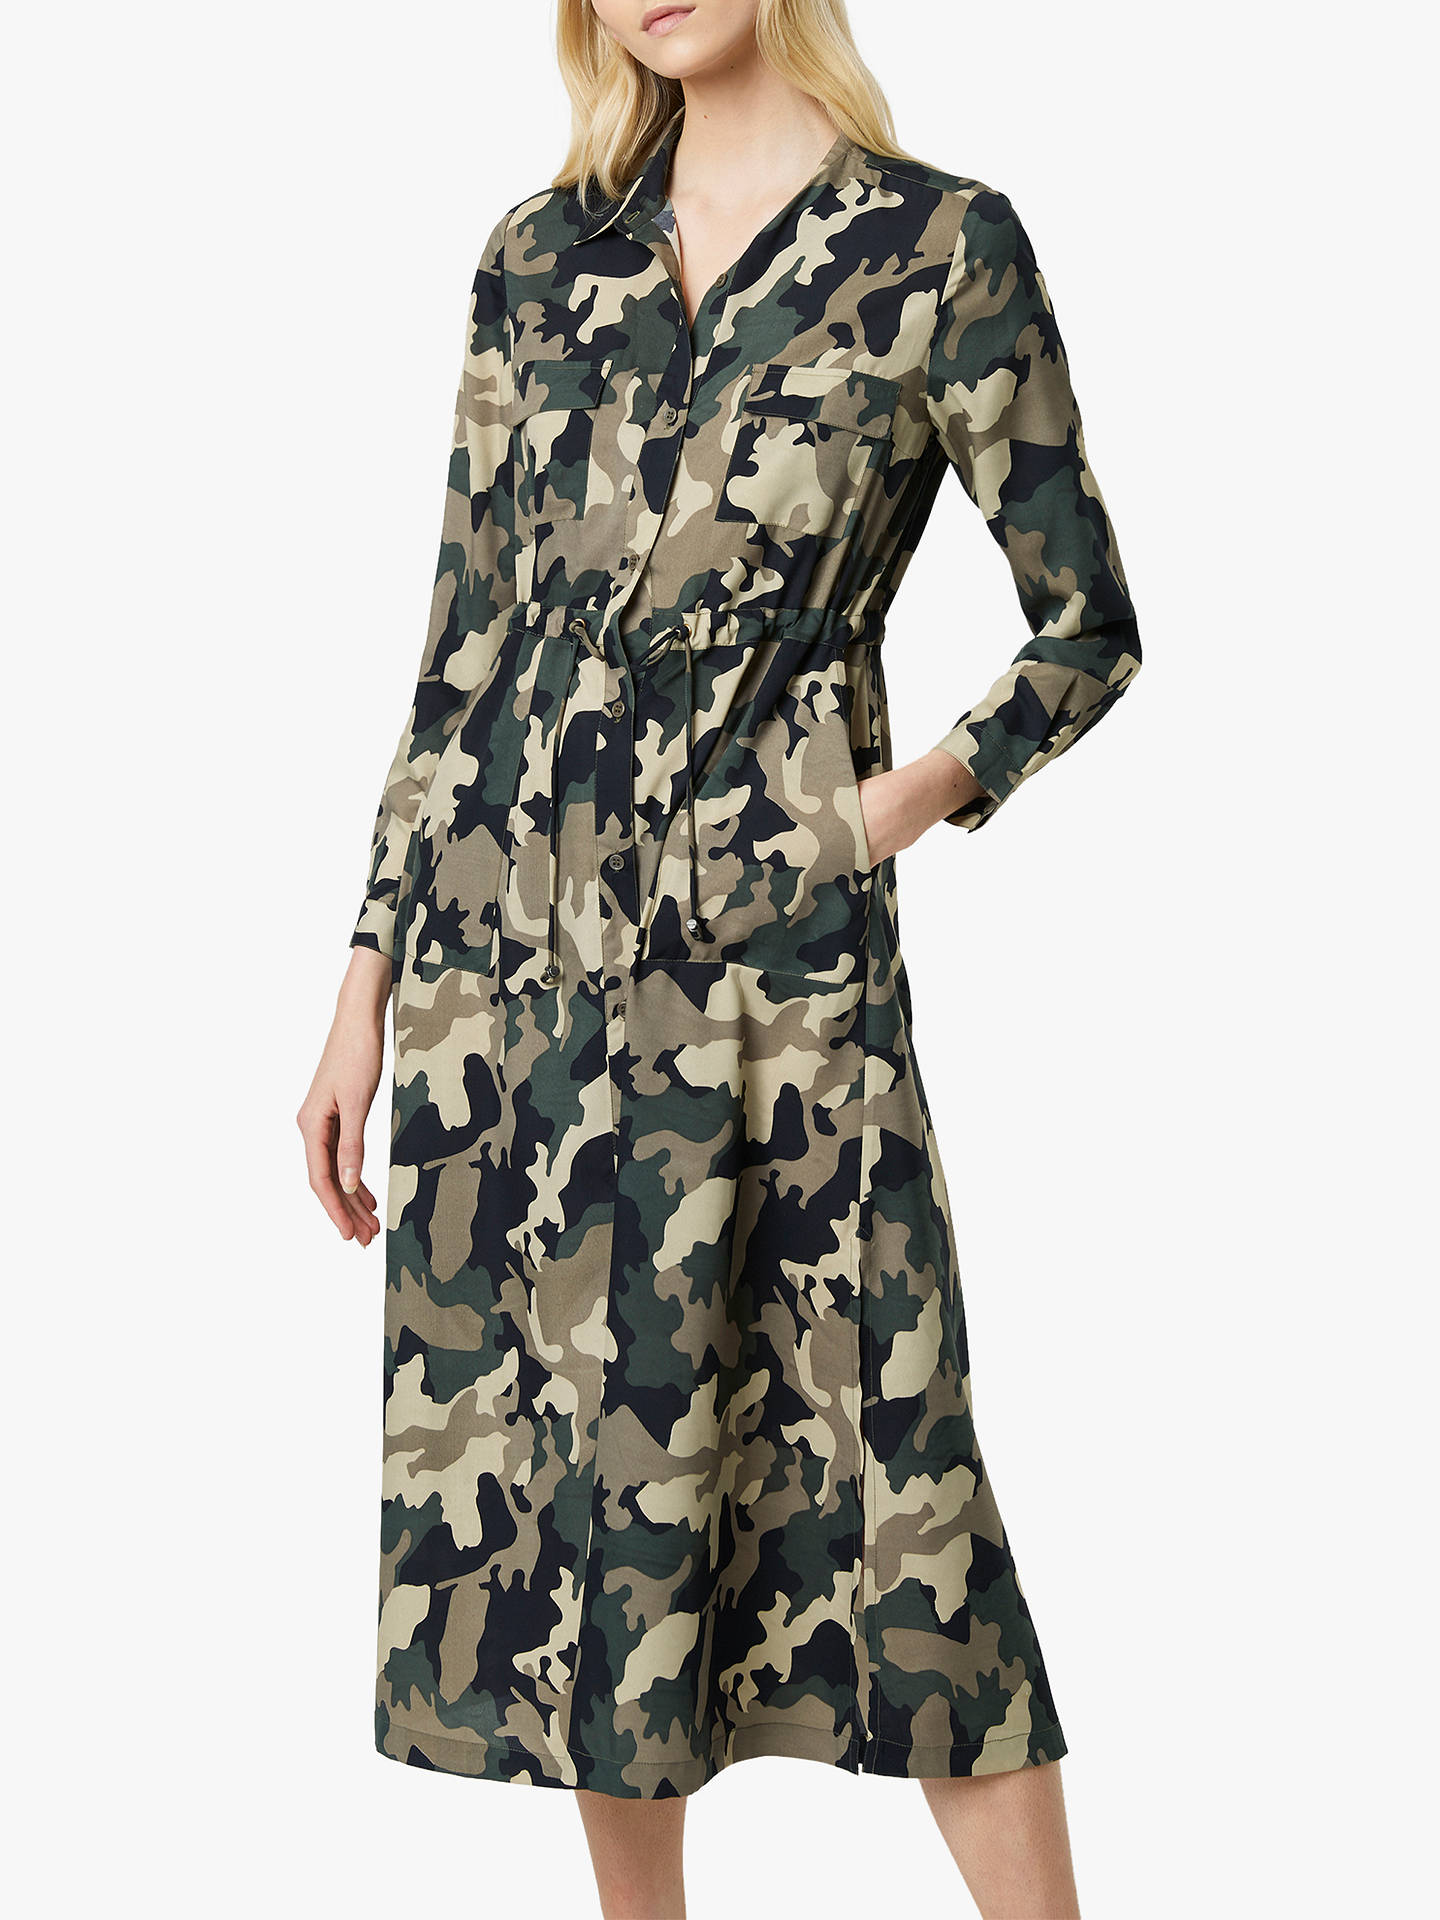 e9c148a9e30 Buy French Connection Camo Midi Shirt Dress, Khaki, 16 Online at  johnlewis.com ...